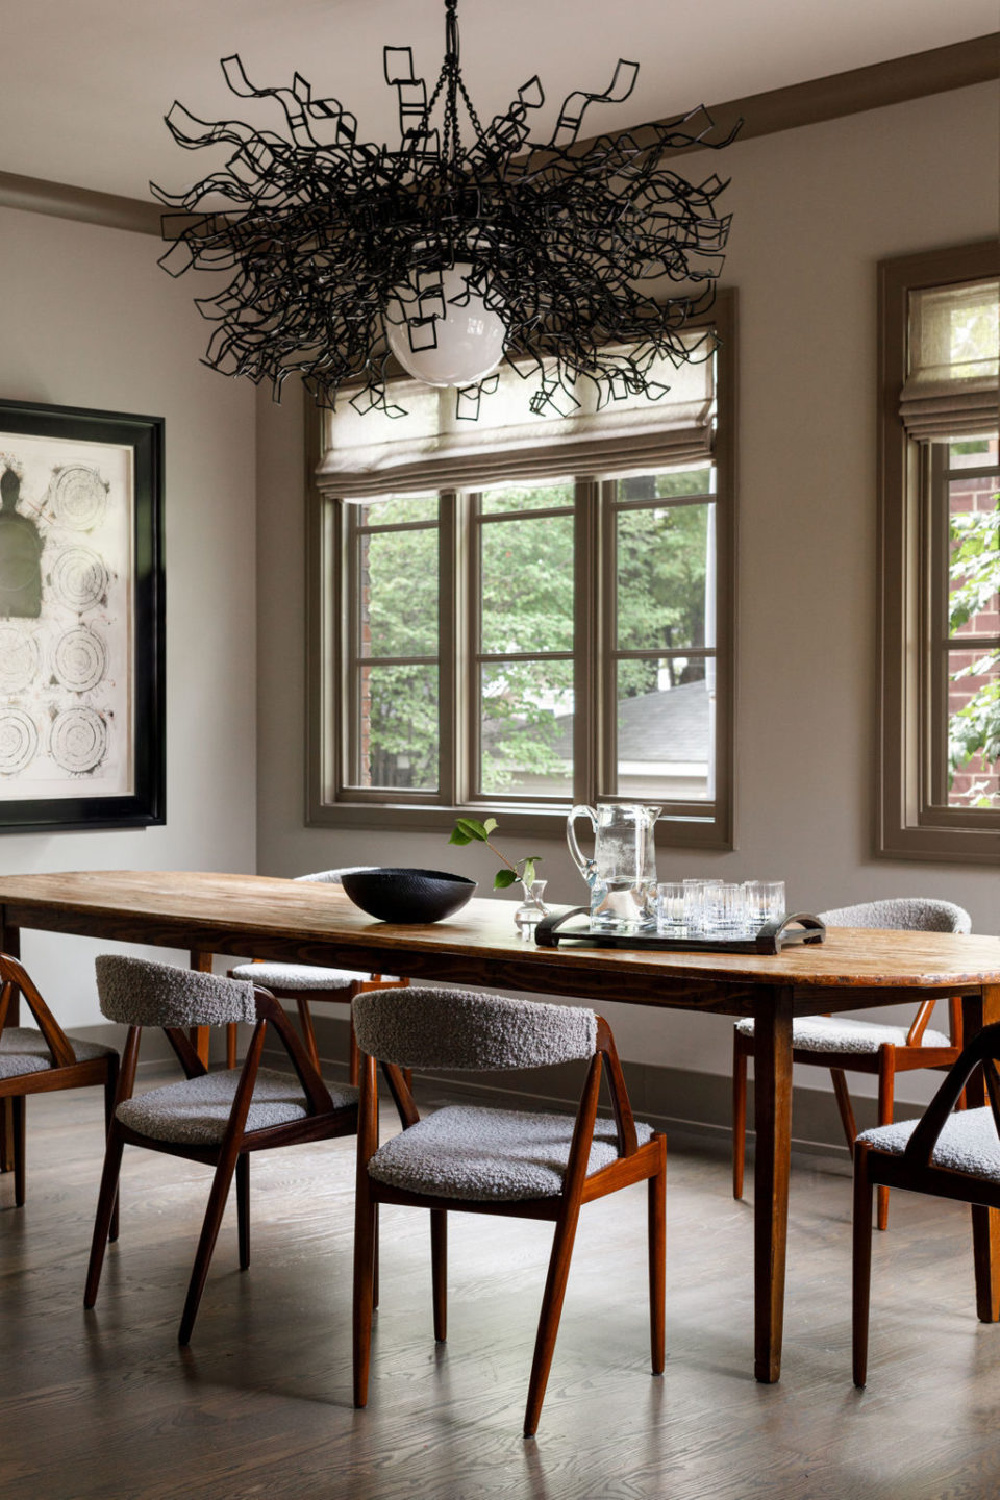 Modern rustic dining room with sculptural chandelier by Lucy Slavinski and interior design by Michael Del Piero.